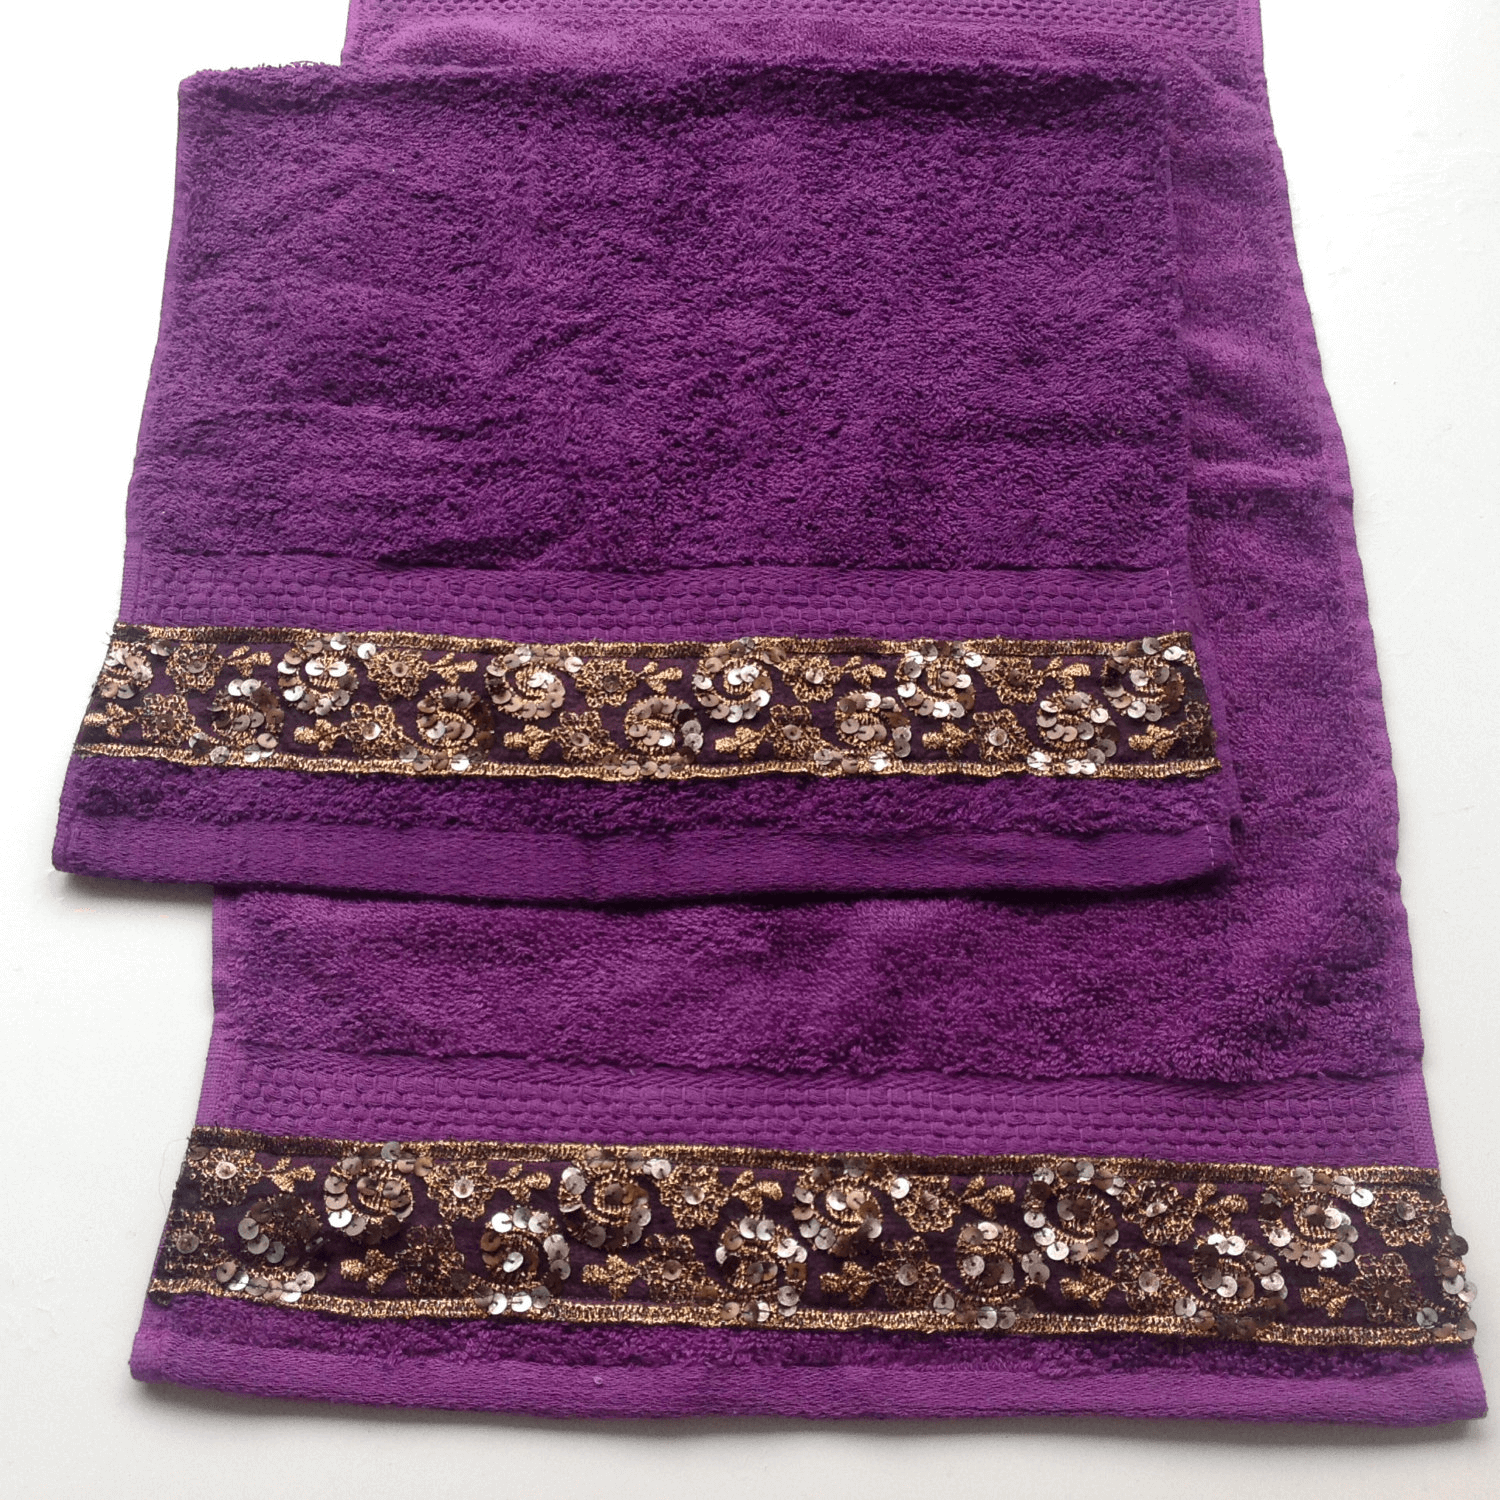 Purple Decorative Bathroom Towels Easyhometips Org